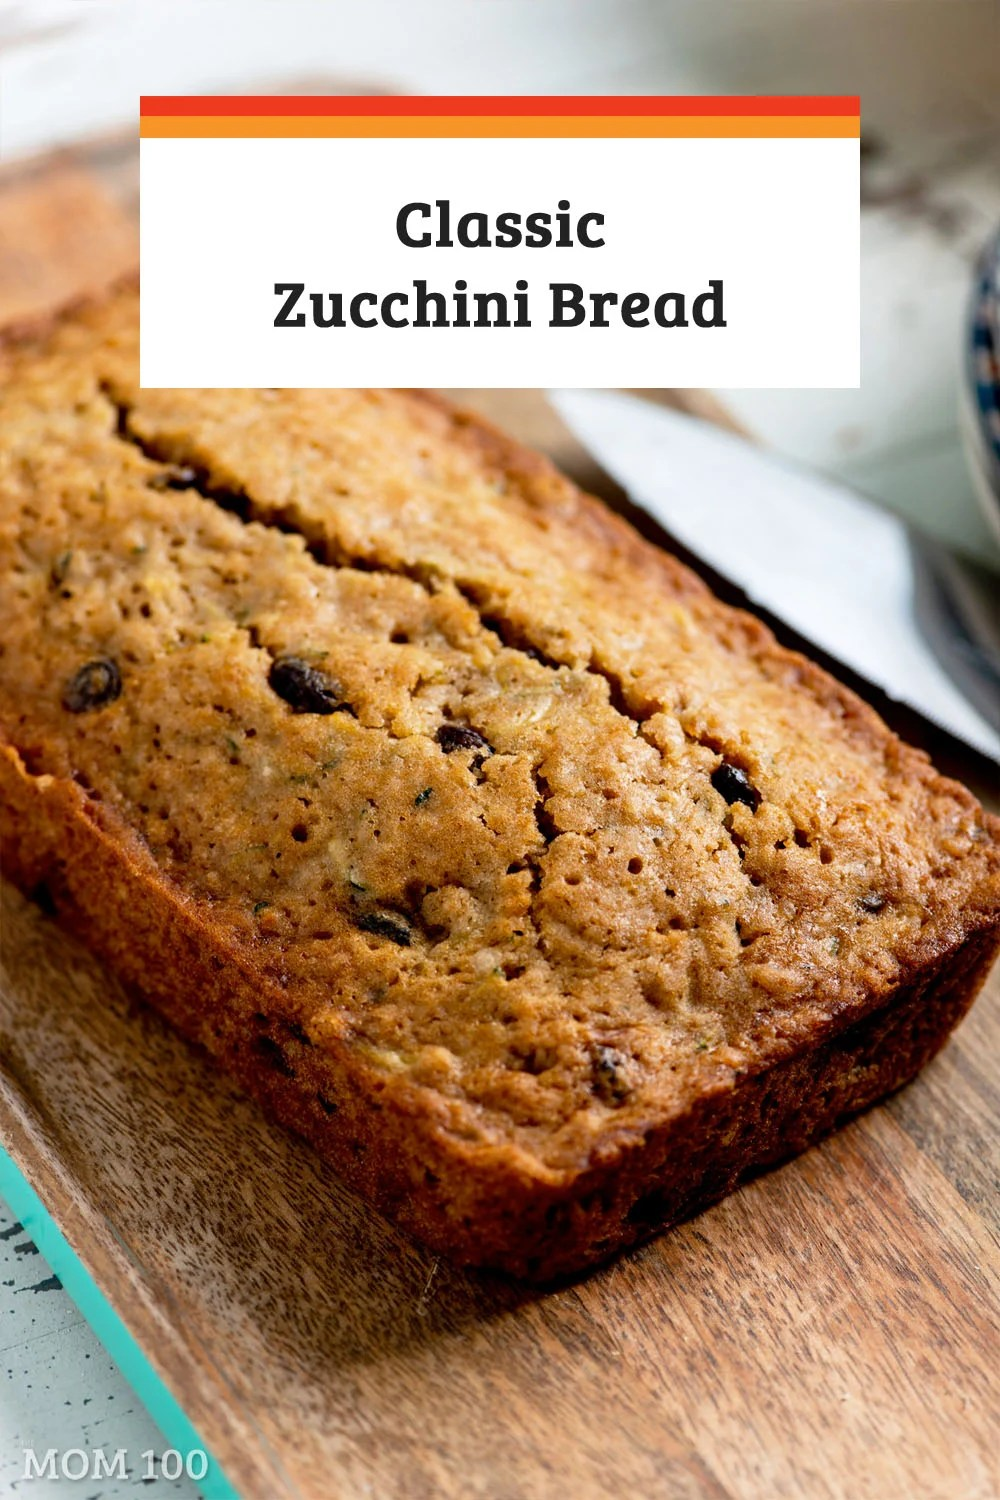 Classic Zucchini Bread: This recipe proves there is no such thing as too much zucchini. So easy and moist—and ready to pop into the oven in less than 15 minutes! Recipe makes 2 loaves or 24 muffins. #baking #quickbread #zucchinibread #muffins #breakfast